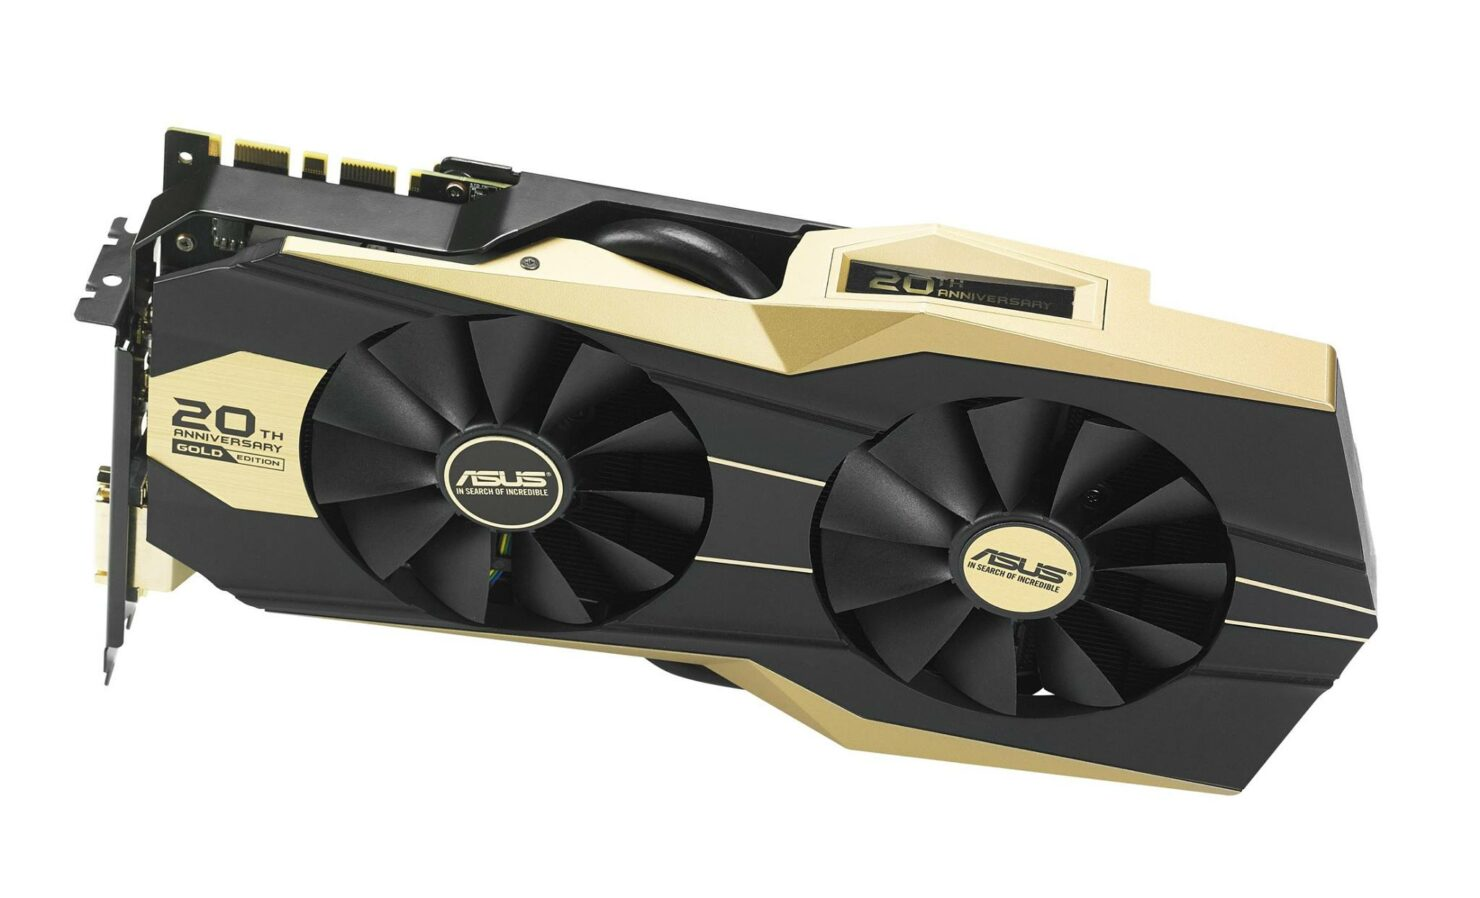 asus-geforce-gtx-980-20th-anniversary-gold-edition_side-2